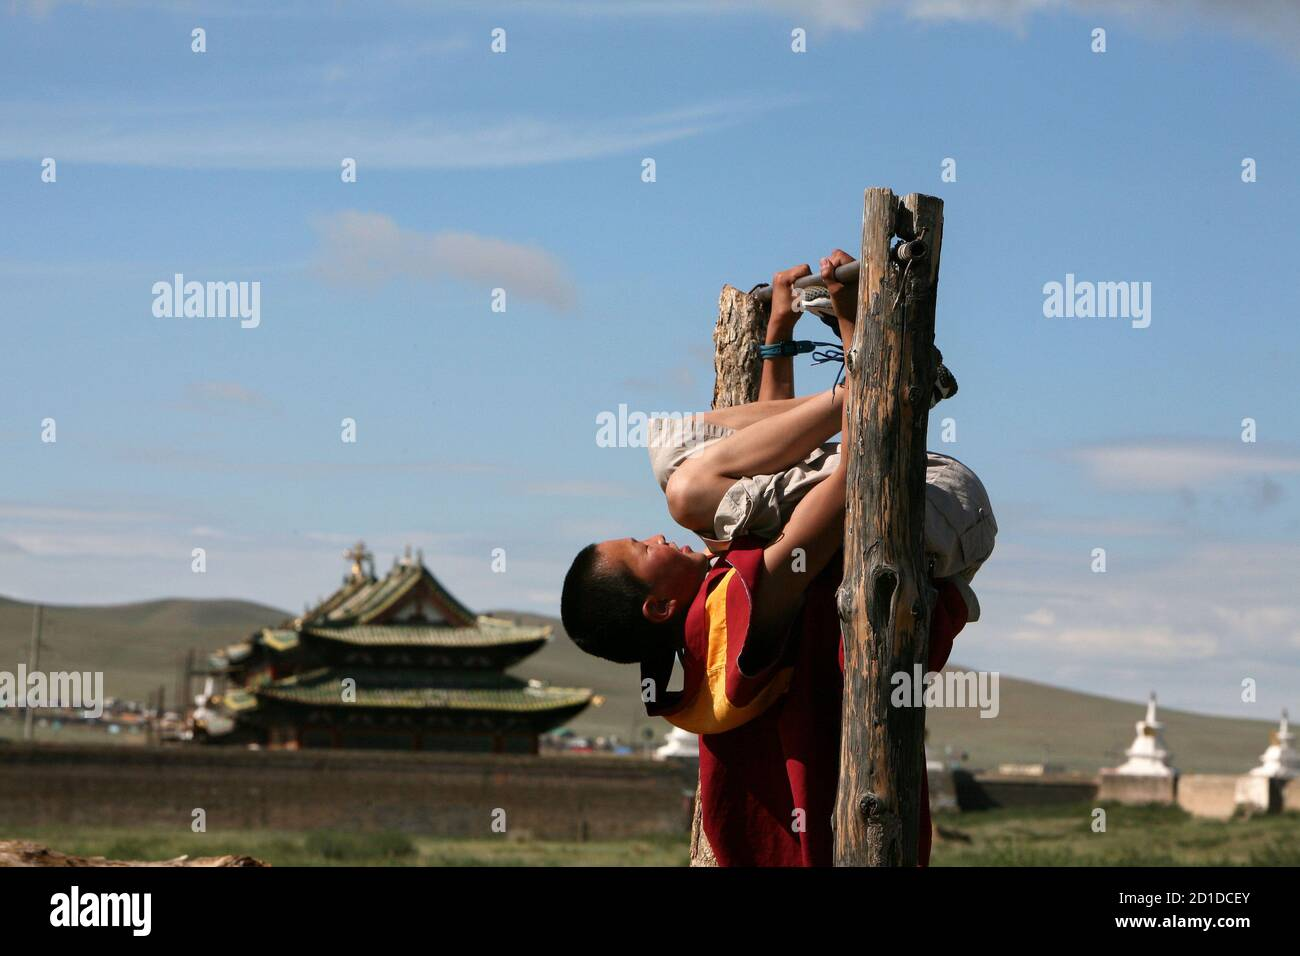 A Buddhist monk plays at the backyard of the Erdene Zeu monastery in Kharahorin, some 380 km (236 miles) west of Ulan Bator, July 8, 2006. The Erdene Zeu monastery was ransacked during the Stalinist period, and worship was forbidden throughout the Communist era, but Buddhism is experiencing a revival since Mongolia overthrew decades of Soviet dominance in 1991. Stock Photo